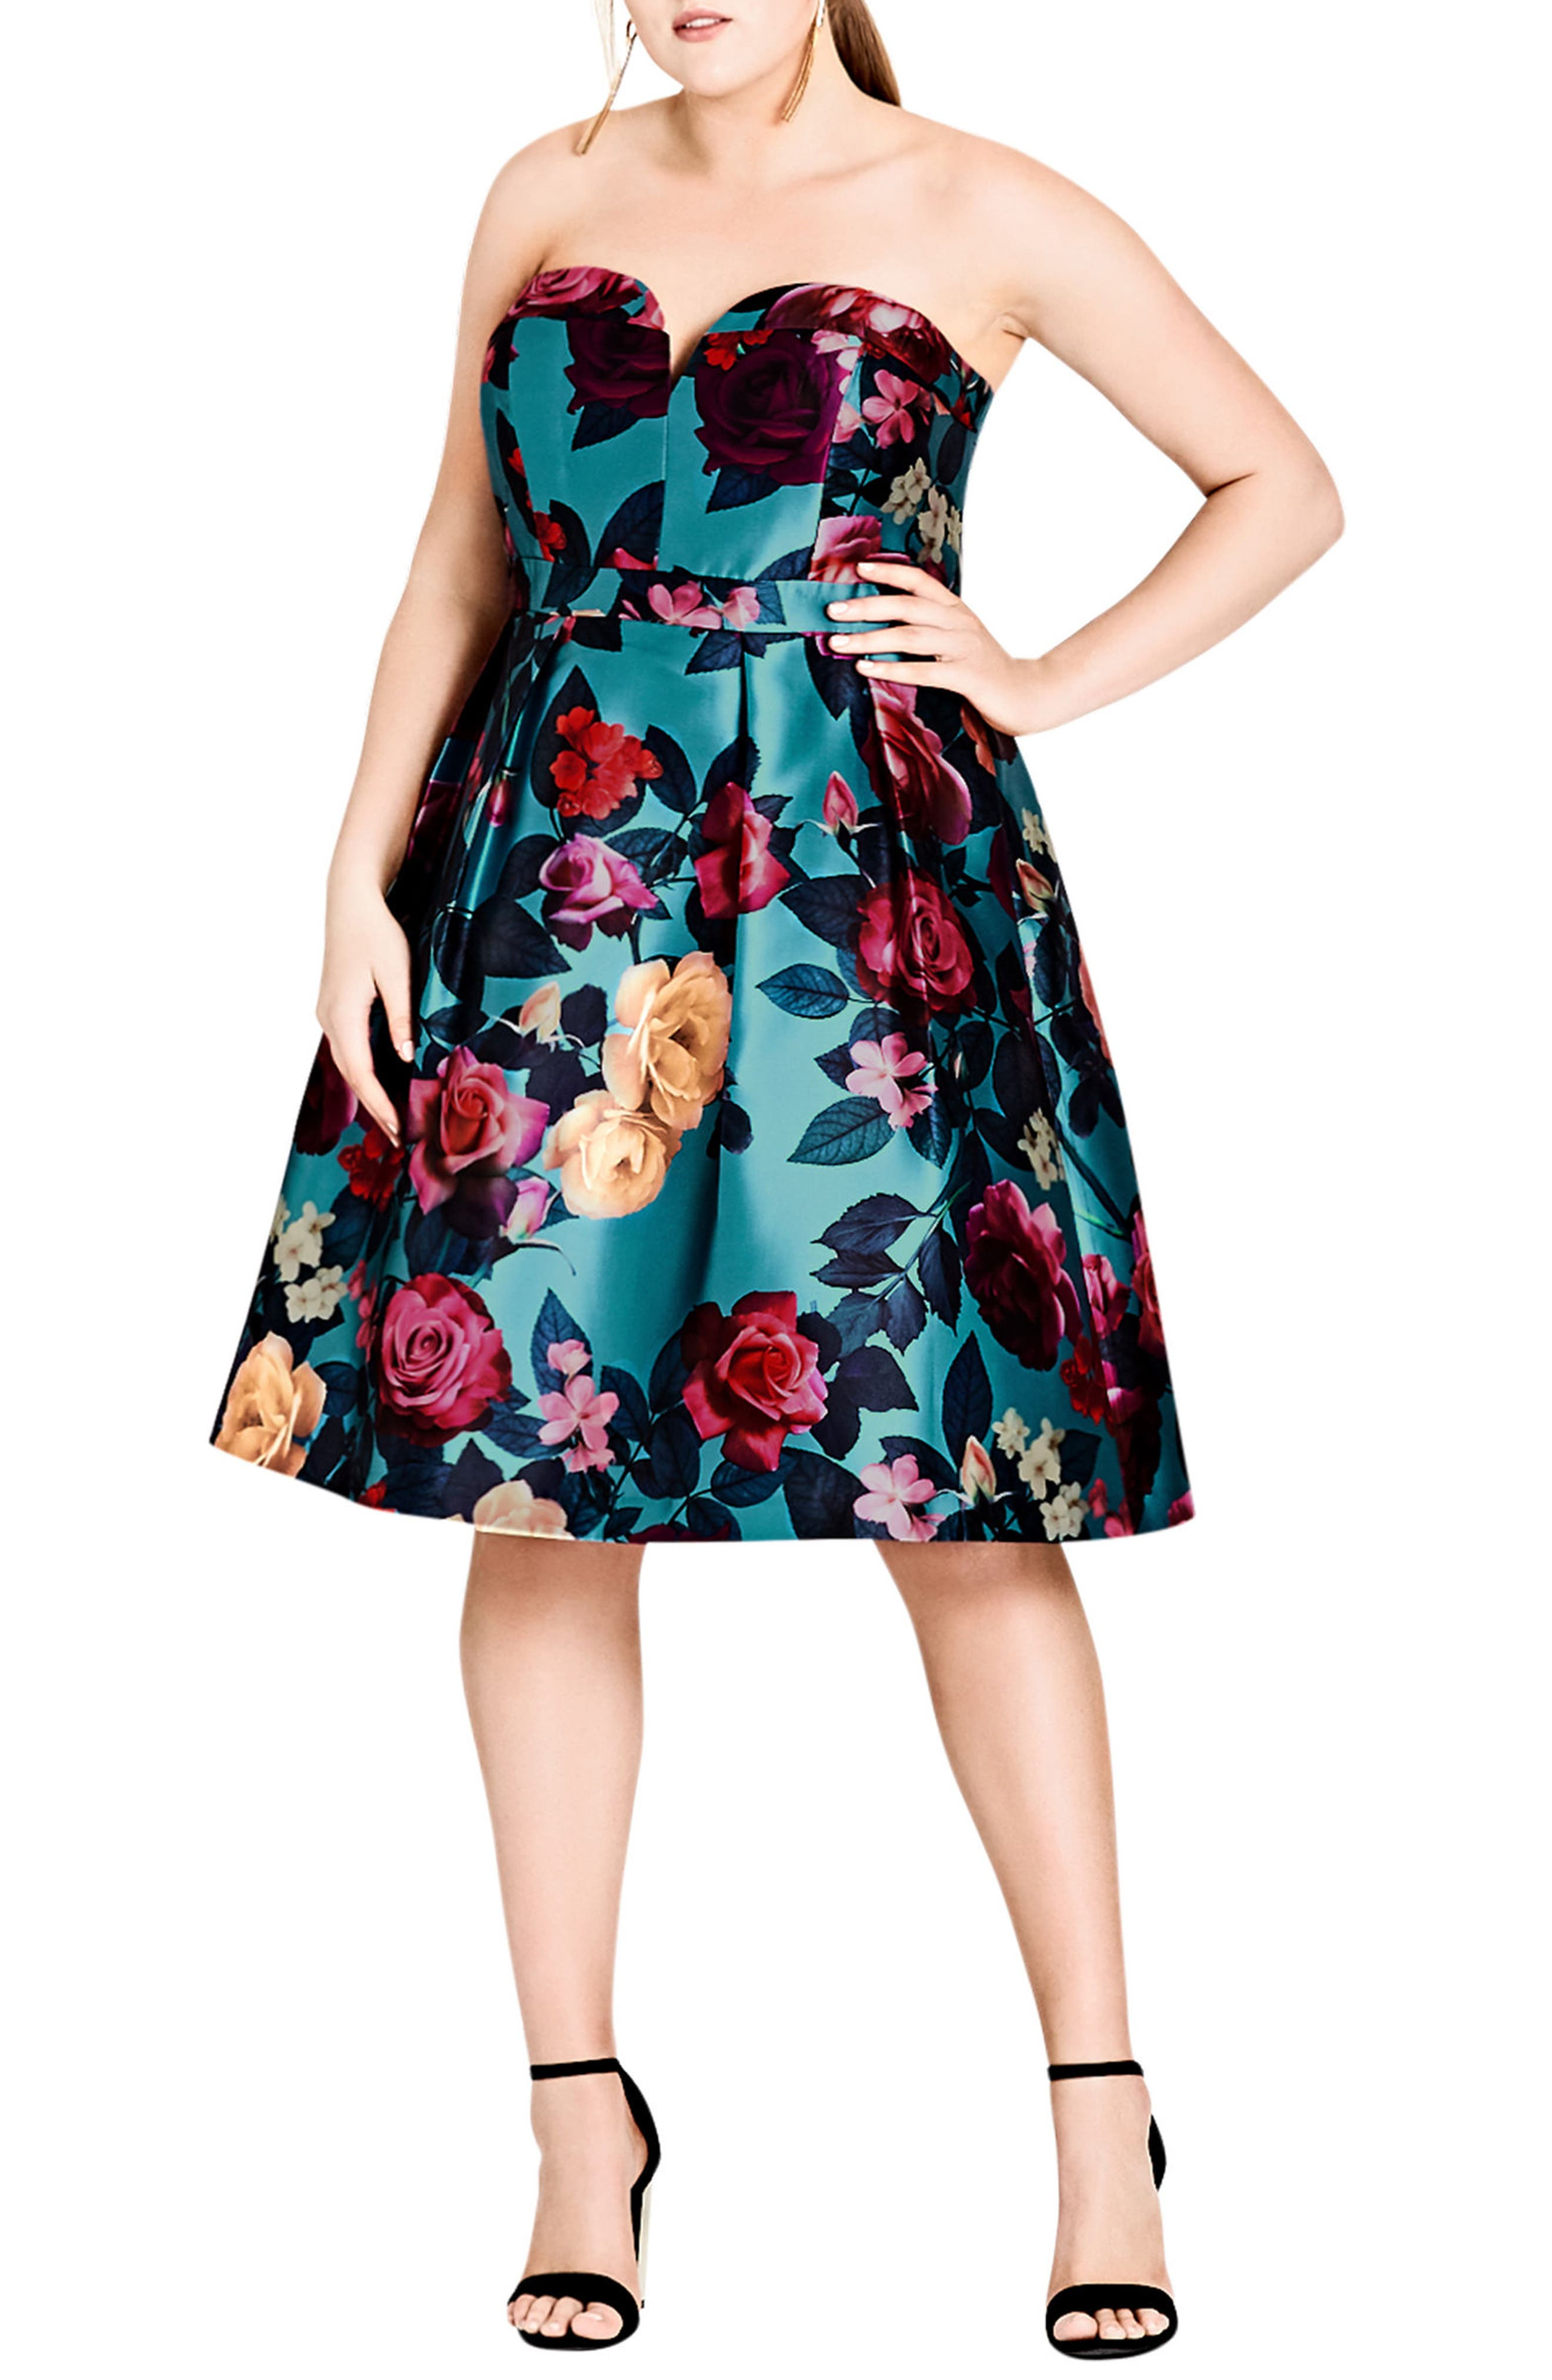 CITY CHIC Lush Floral Print Fit & Flare Dress